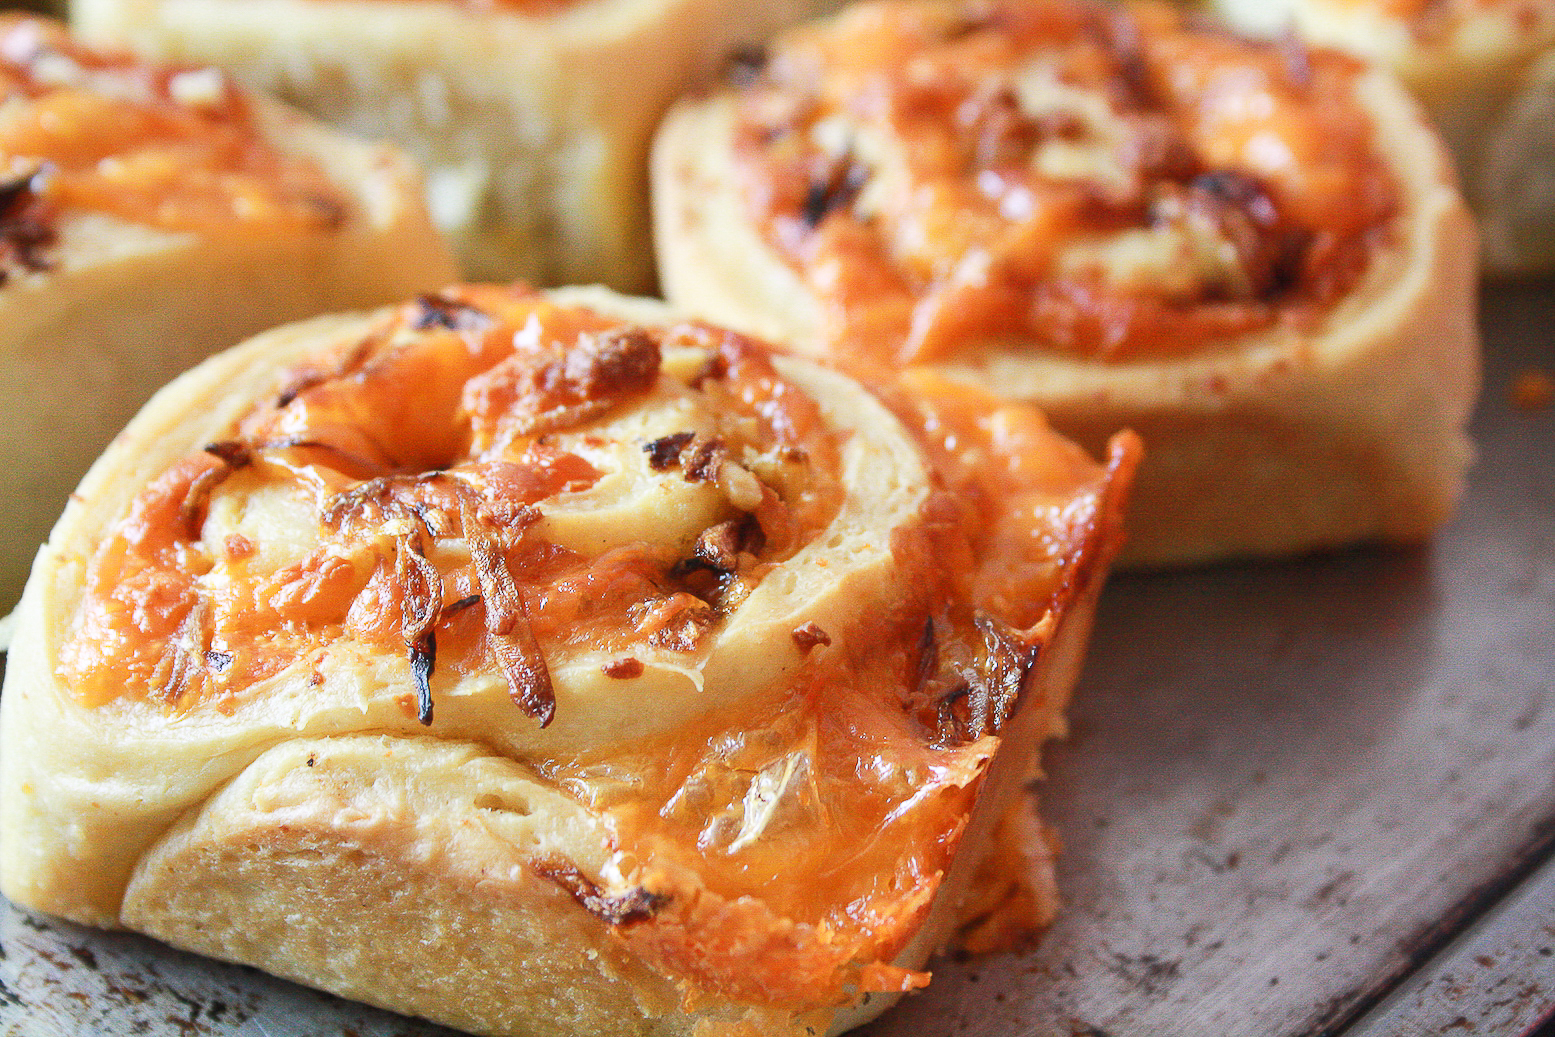 Soft and fluffy savoury rolls filled with orange cheddar and caramelised onions!